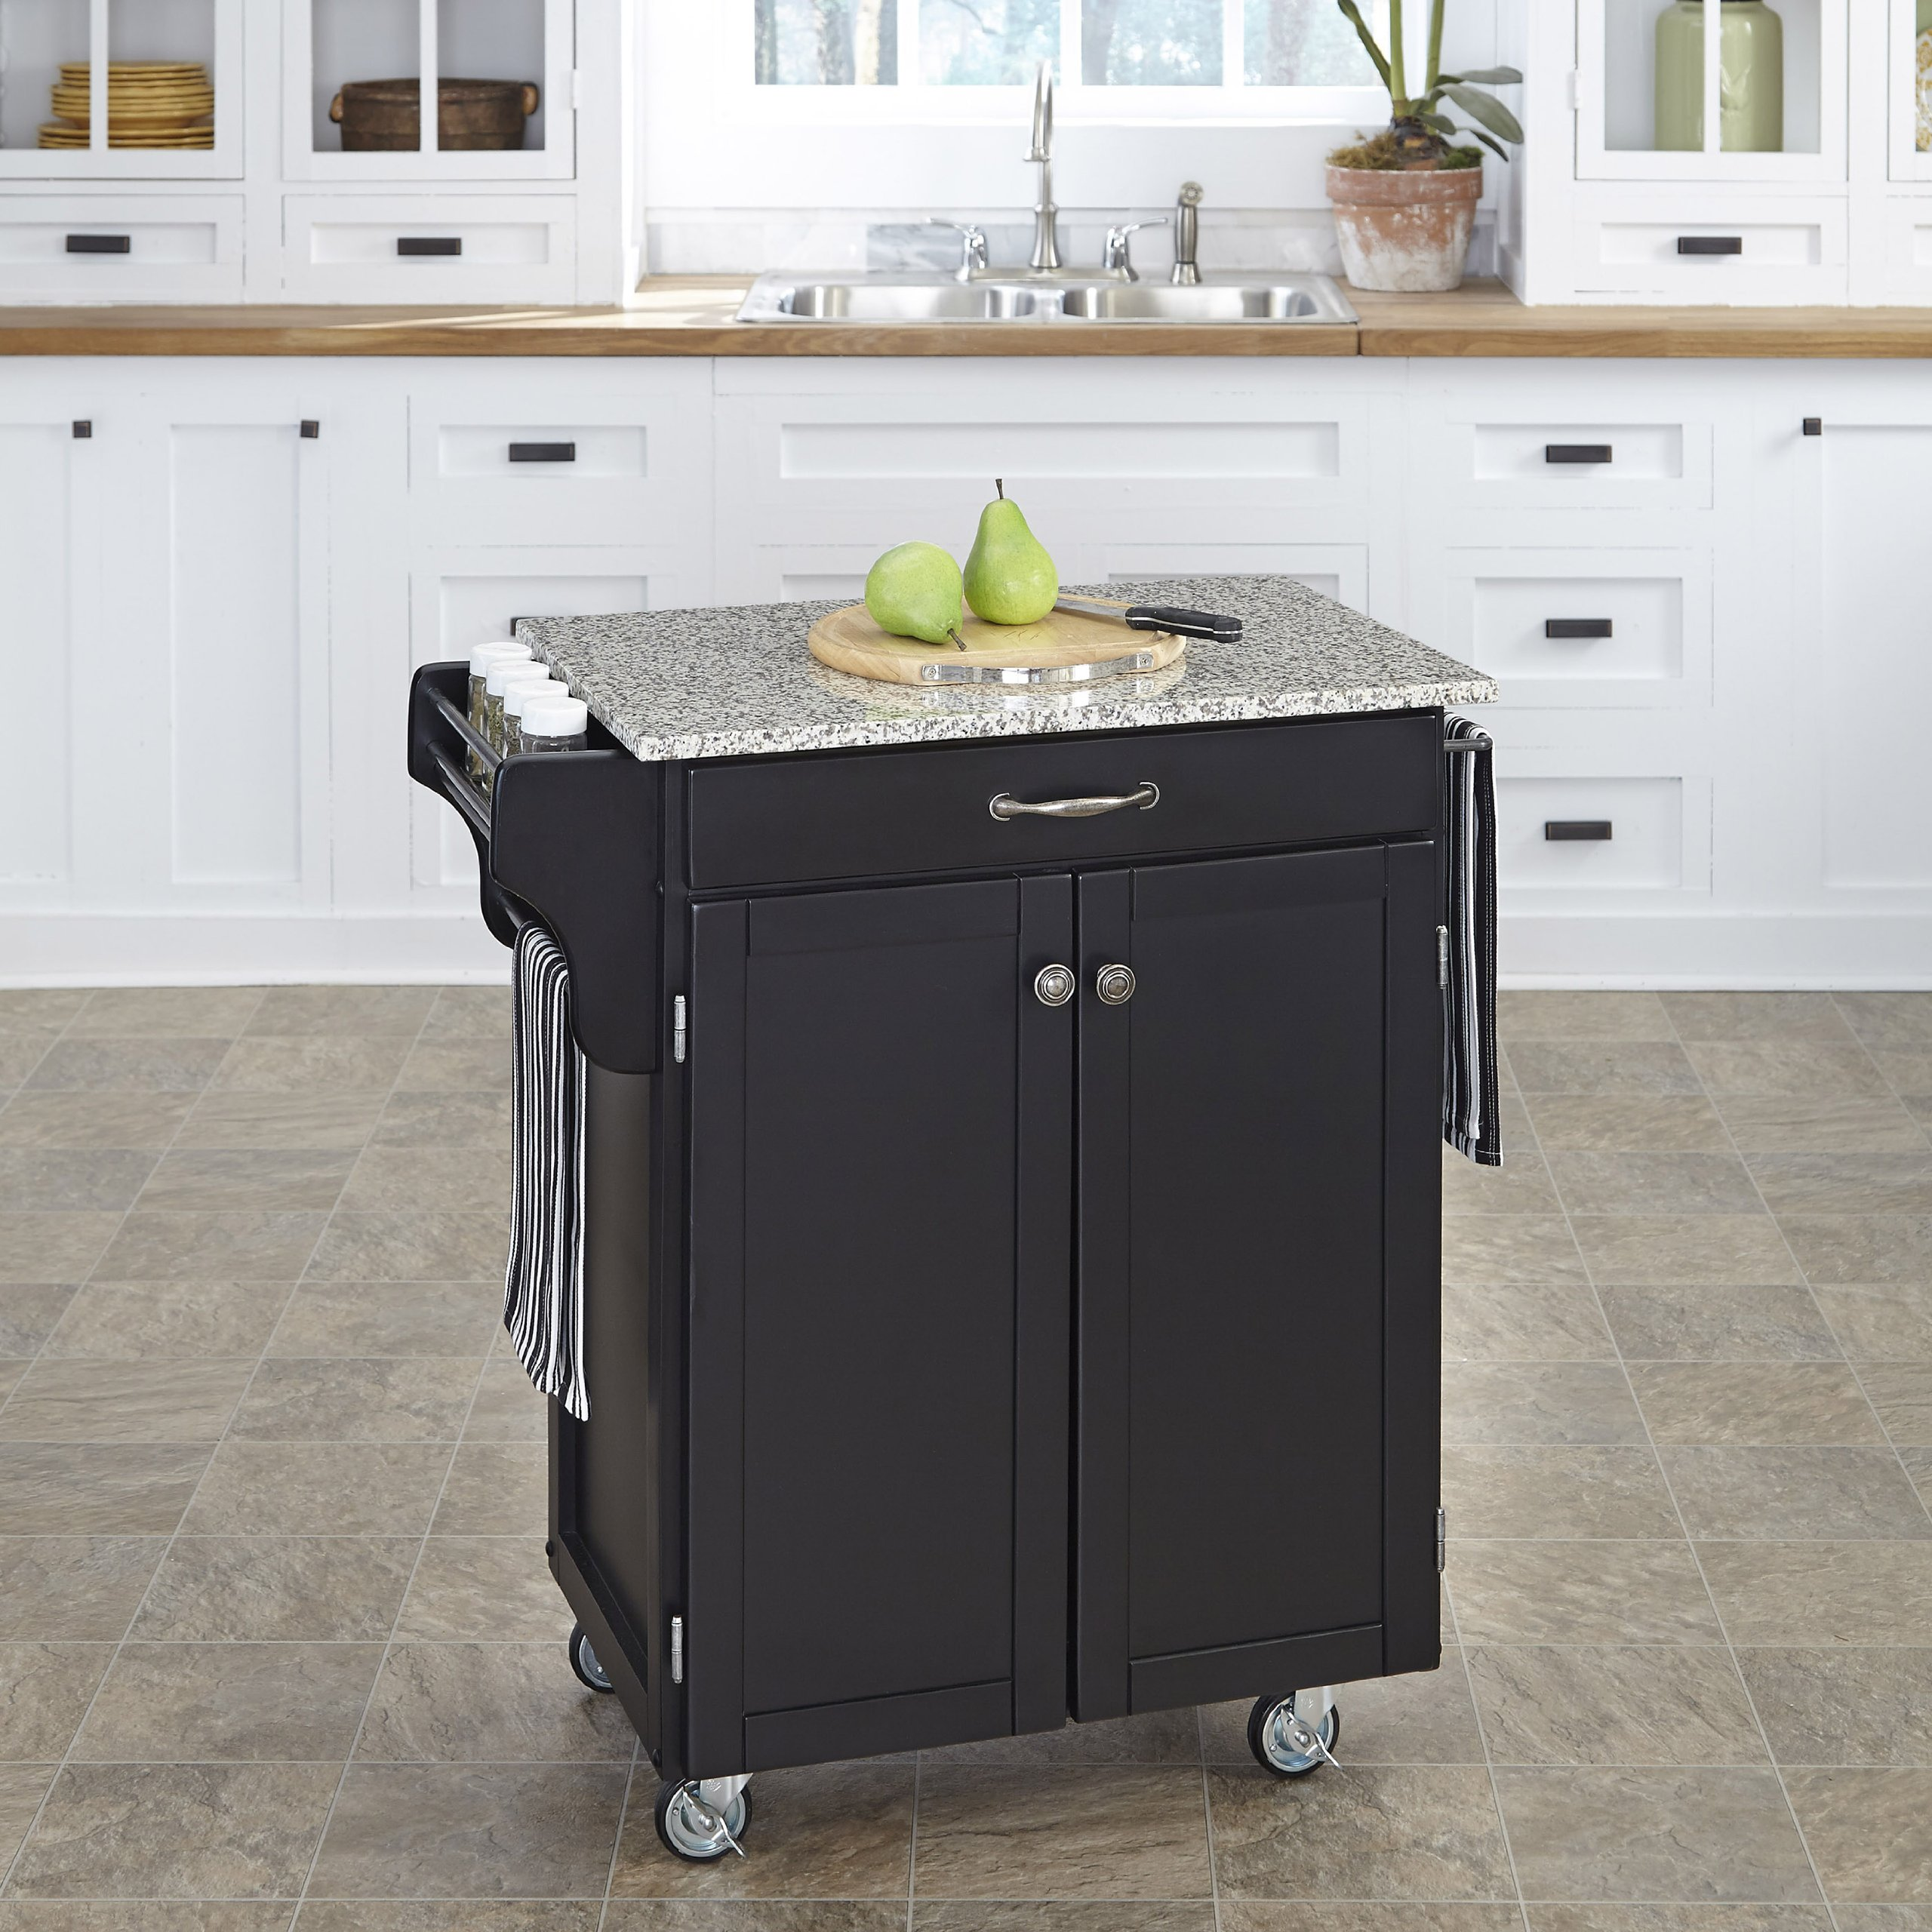 Home Styles 9001-0043 Create-a-Cart 9001 Series Cuisine Cart with Salt and Pepper Granite Top, Black, 32-1/2-Inch by Home Styles (Image #2)